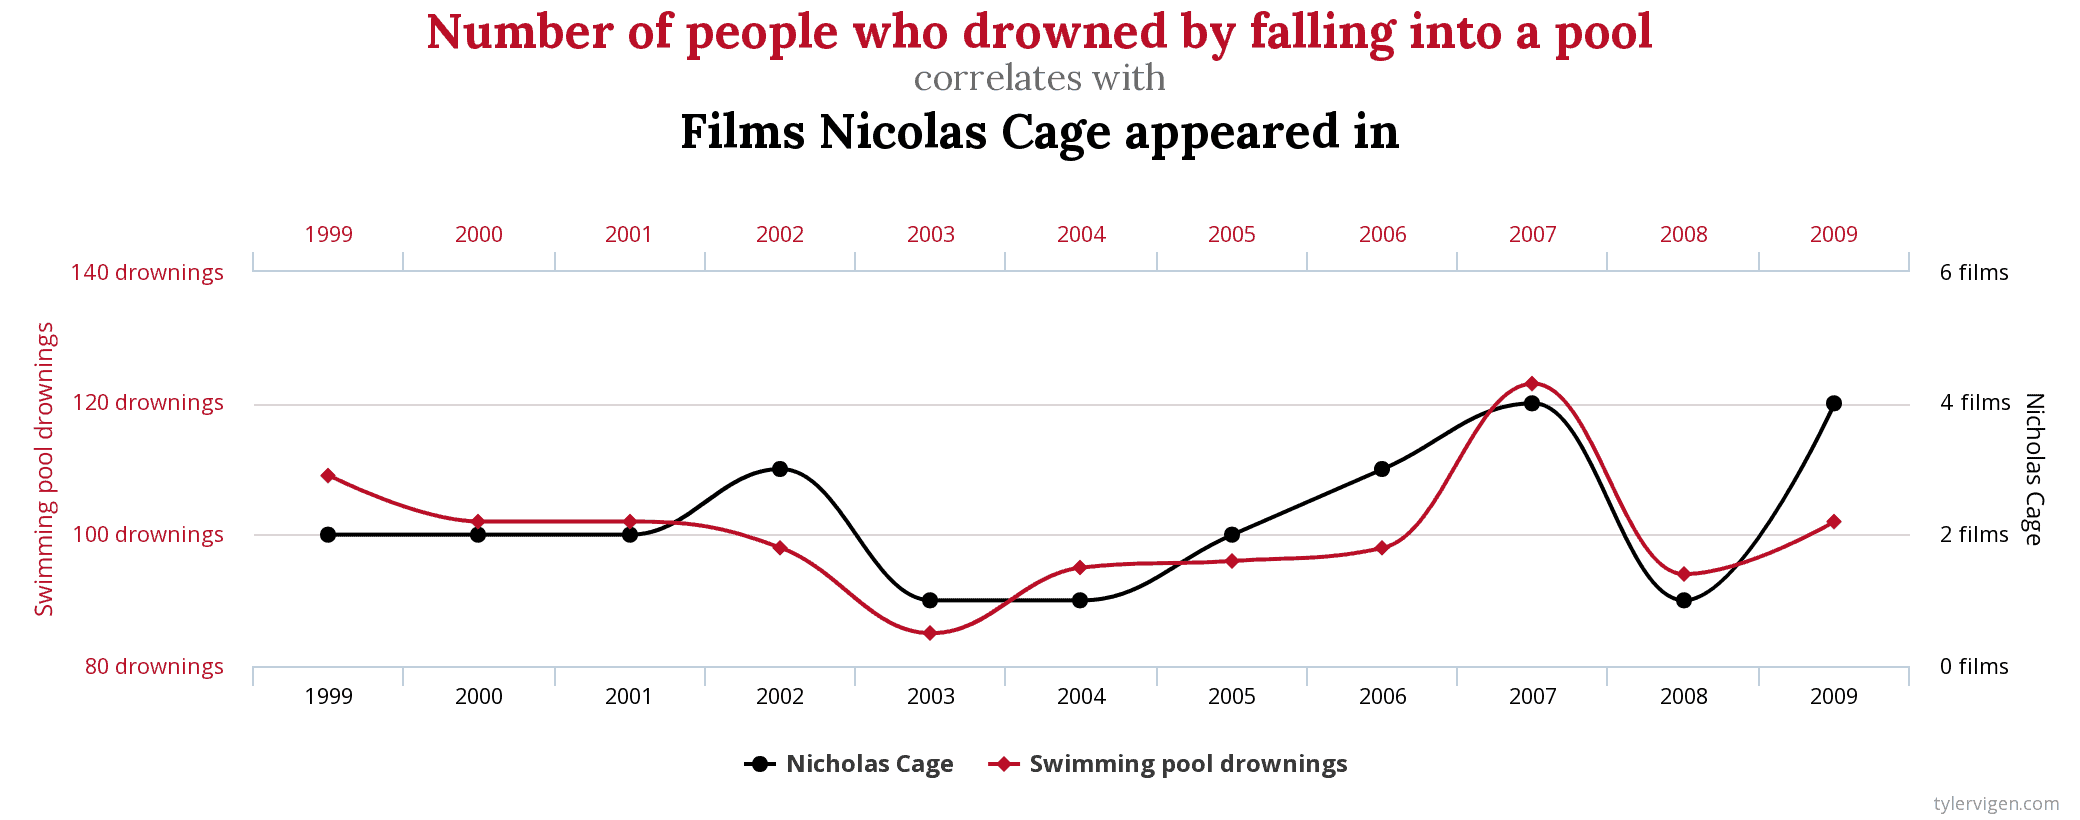 Nicolas Cage correlation